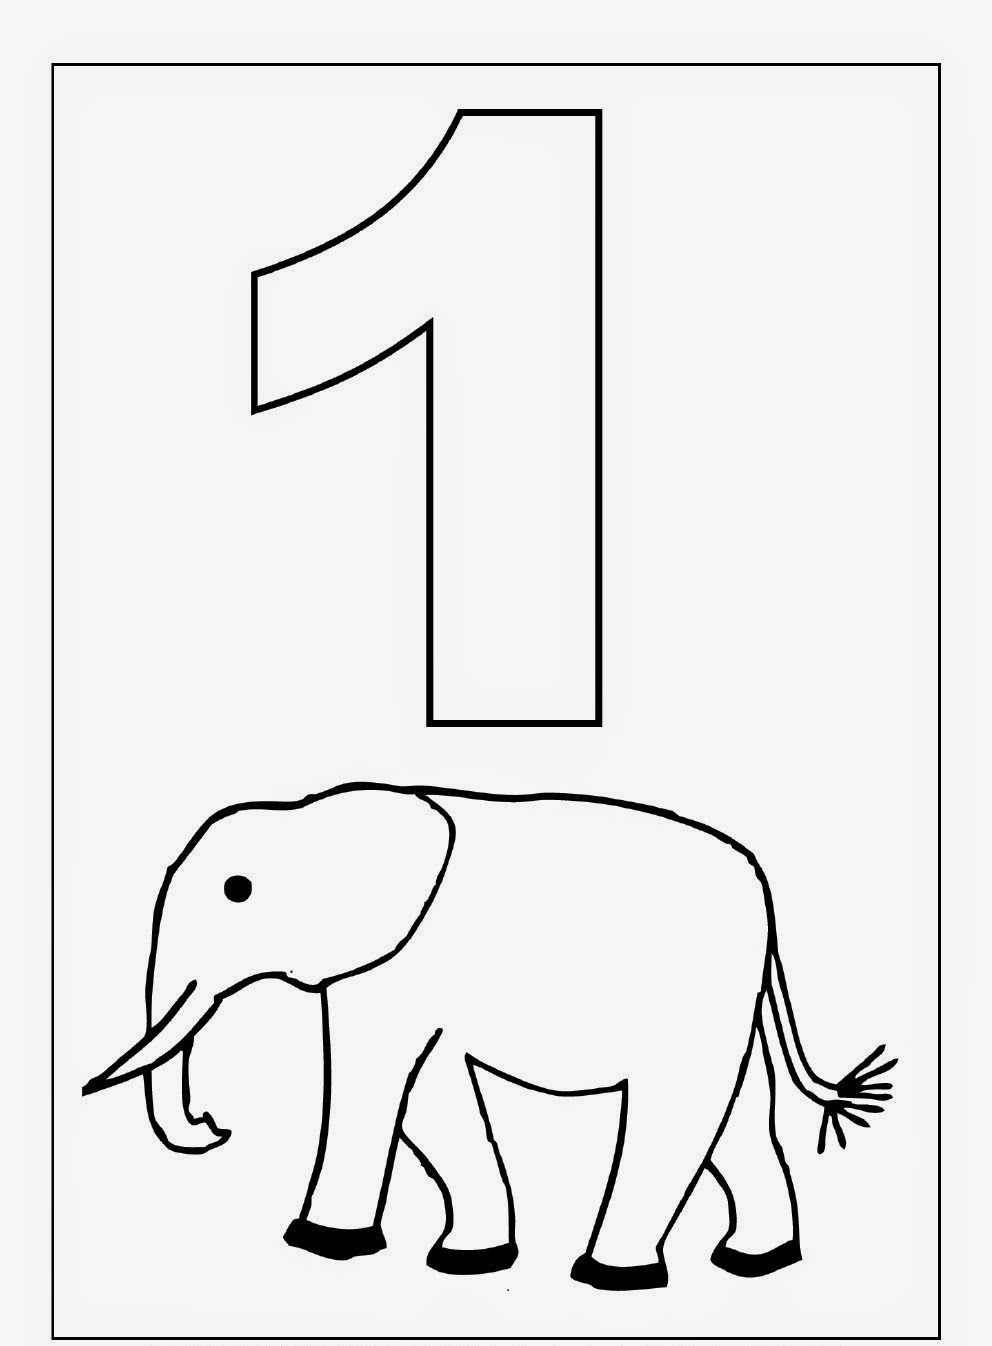 kindergarten worksheets coloring worksheets maths 1 10 - Coloring Worksheets For Kindergarten